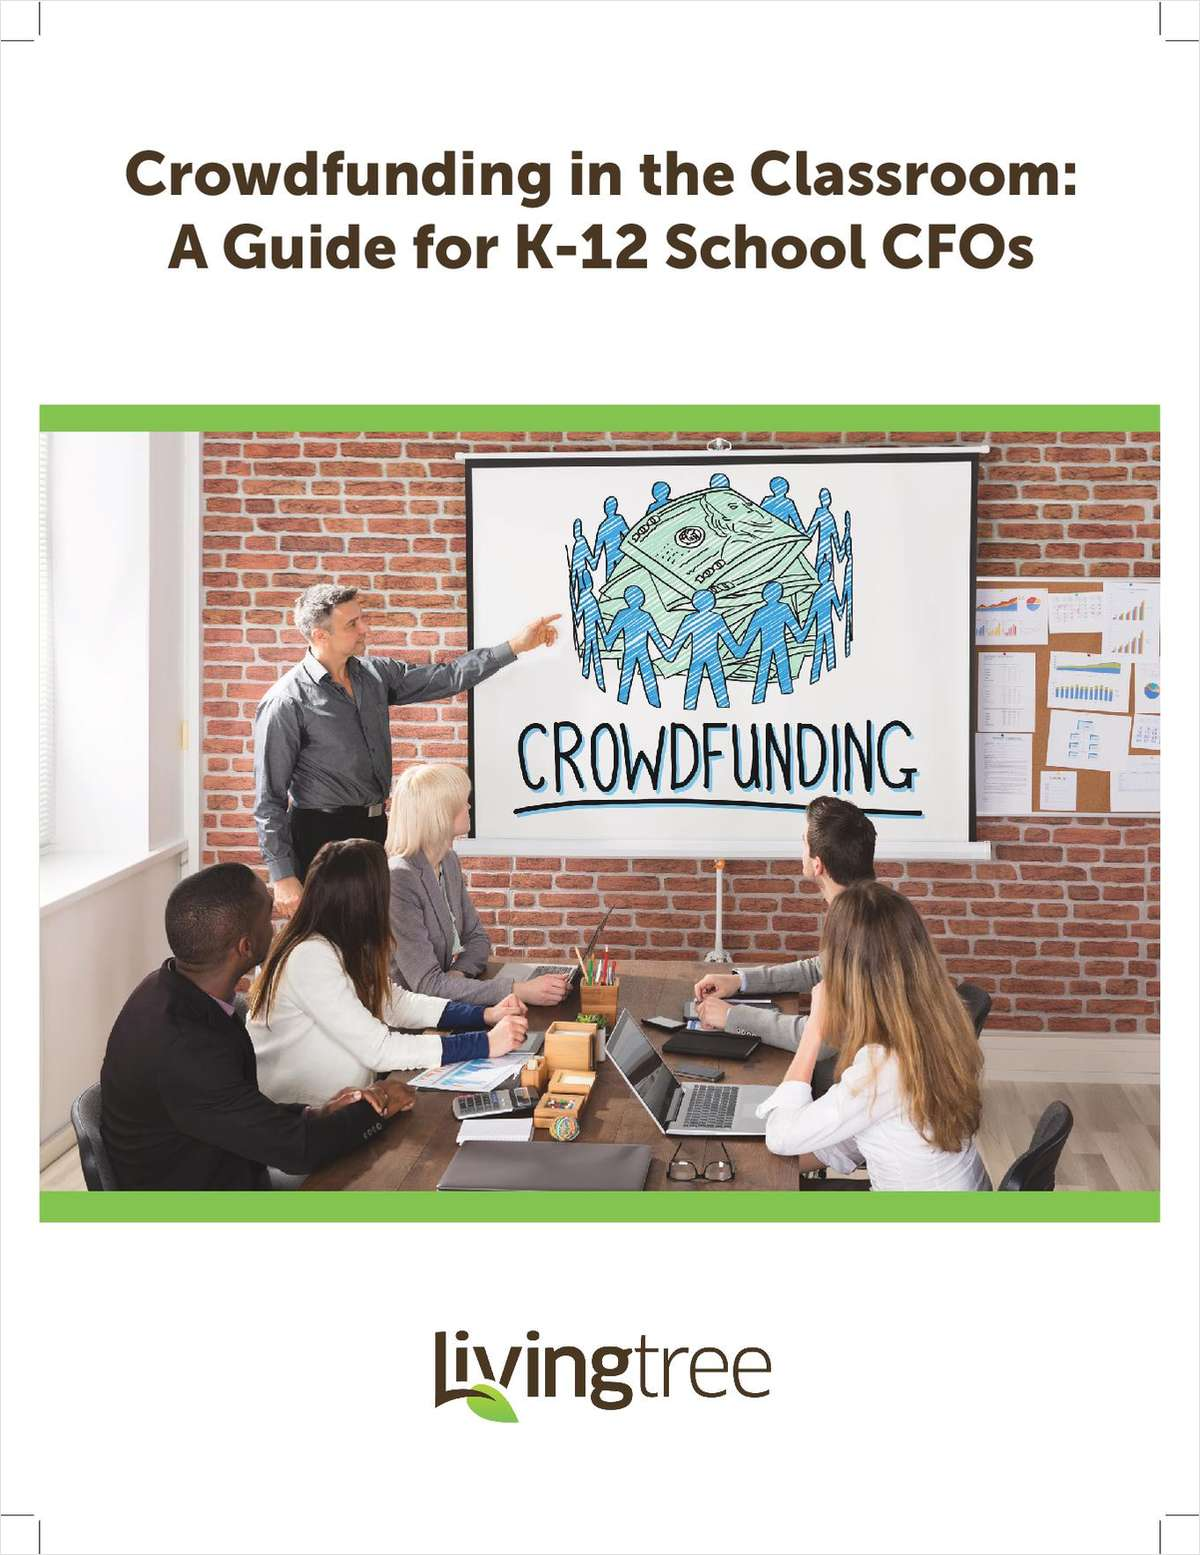 Crowdfunding in the Classroom: A Guide for K-12 School CFOs